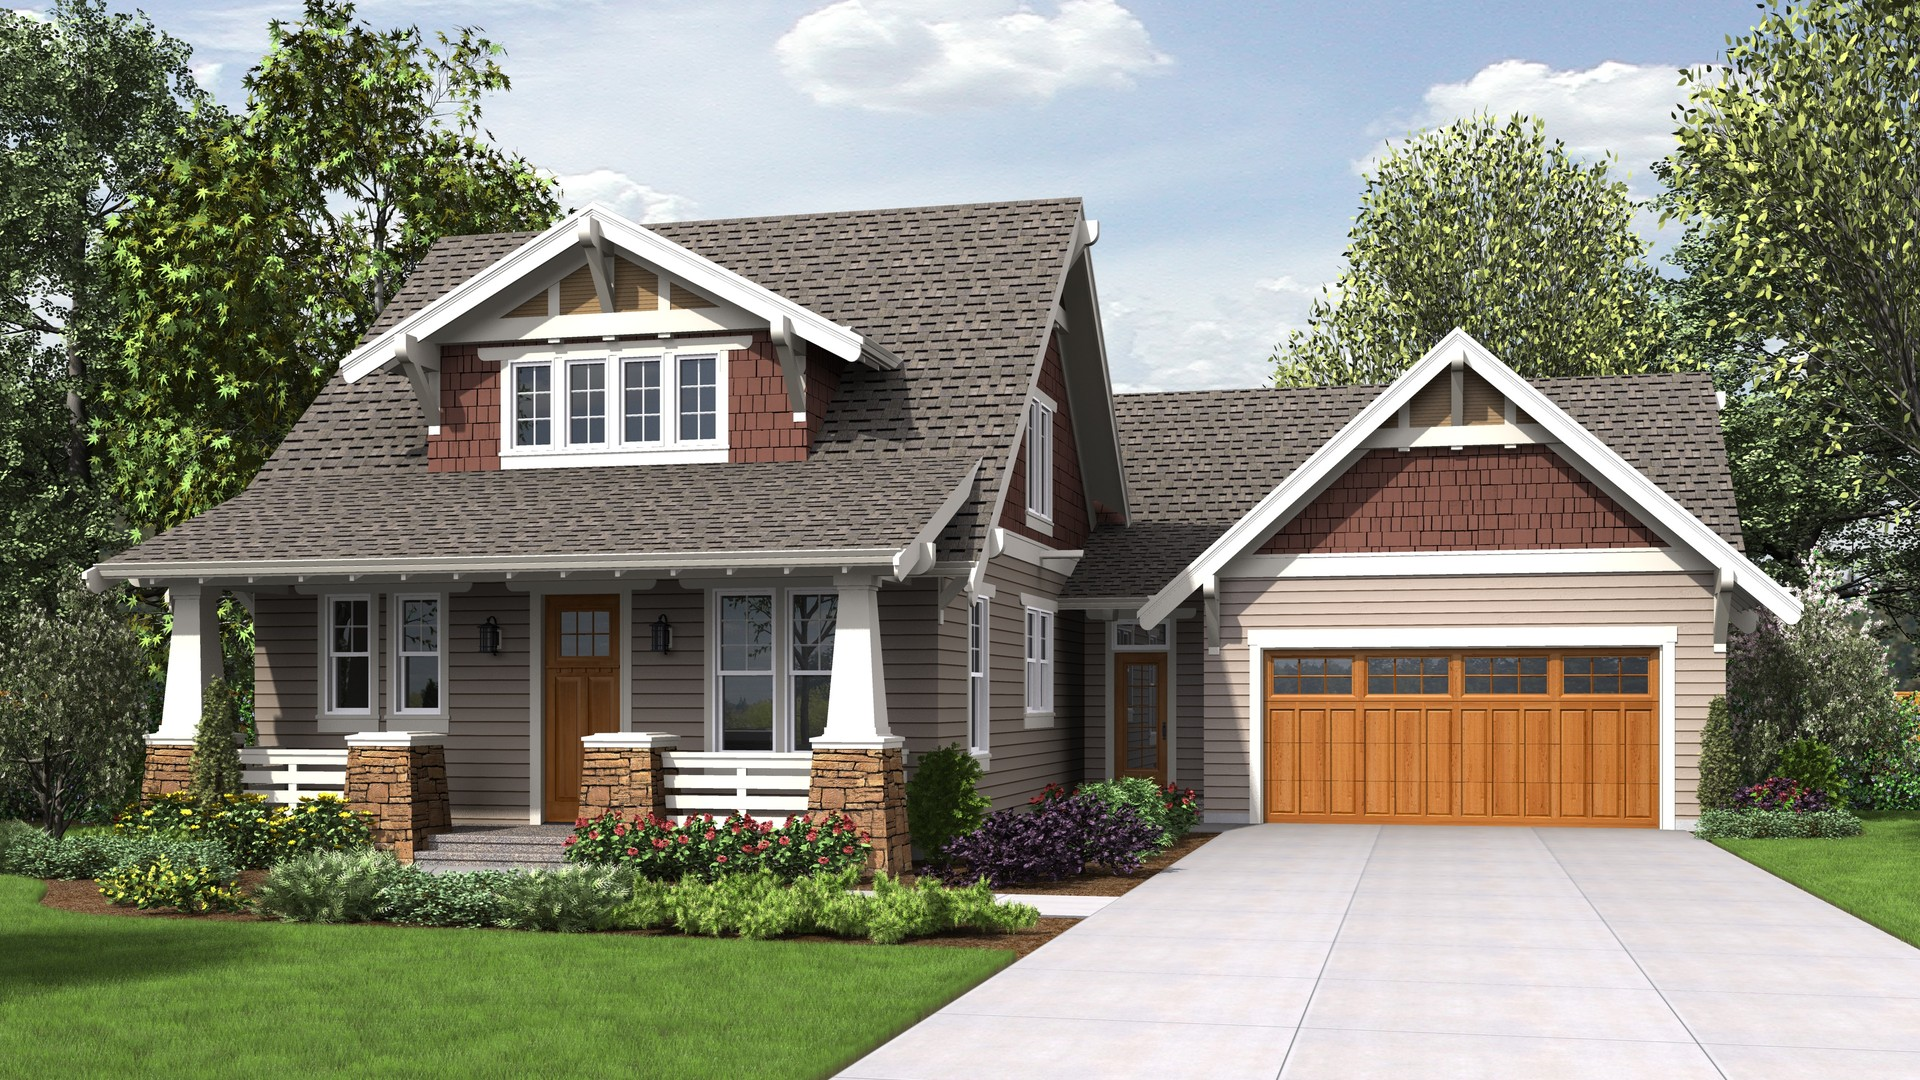 Cottage house plan 22208 the davidson 2292 sqft 3 beds - What is a bungalow style home ...